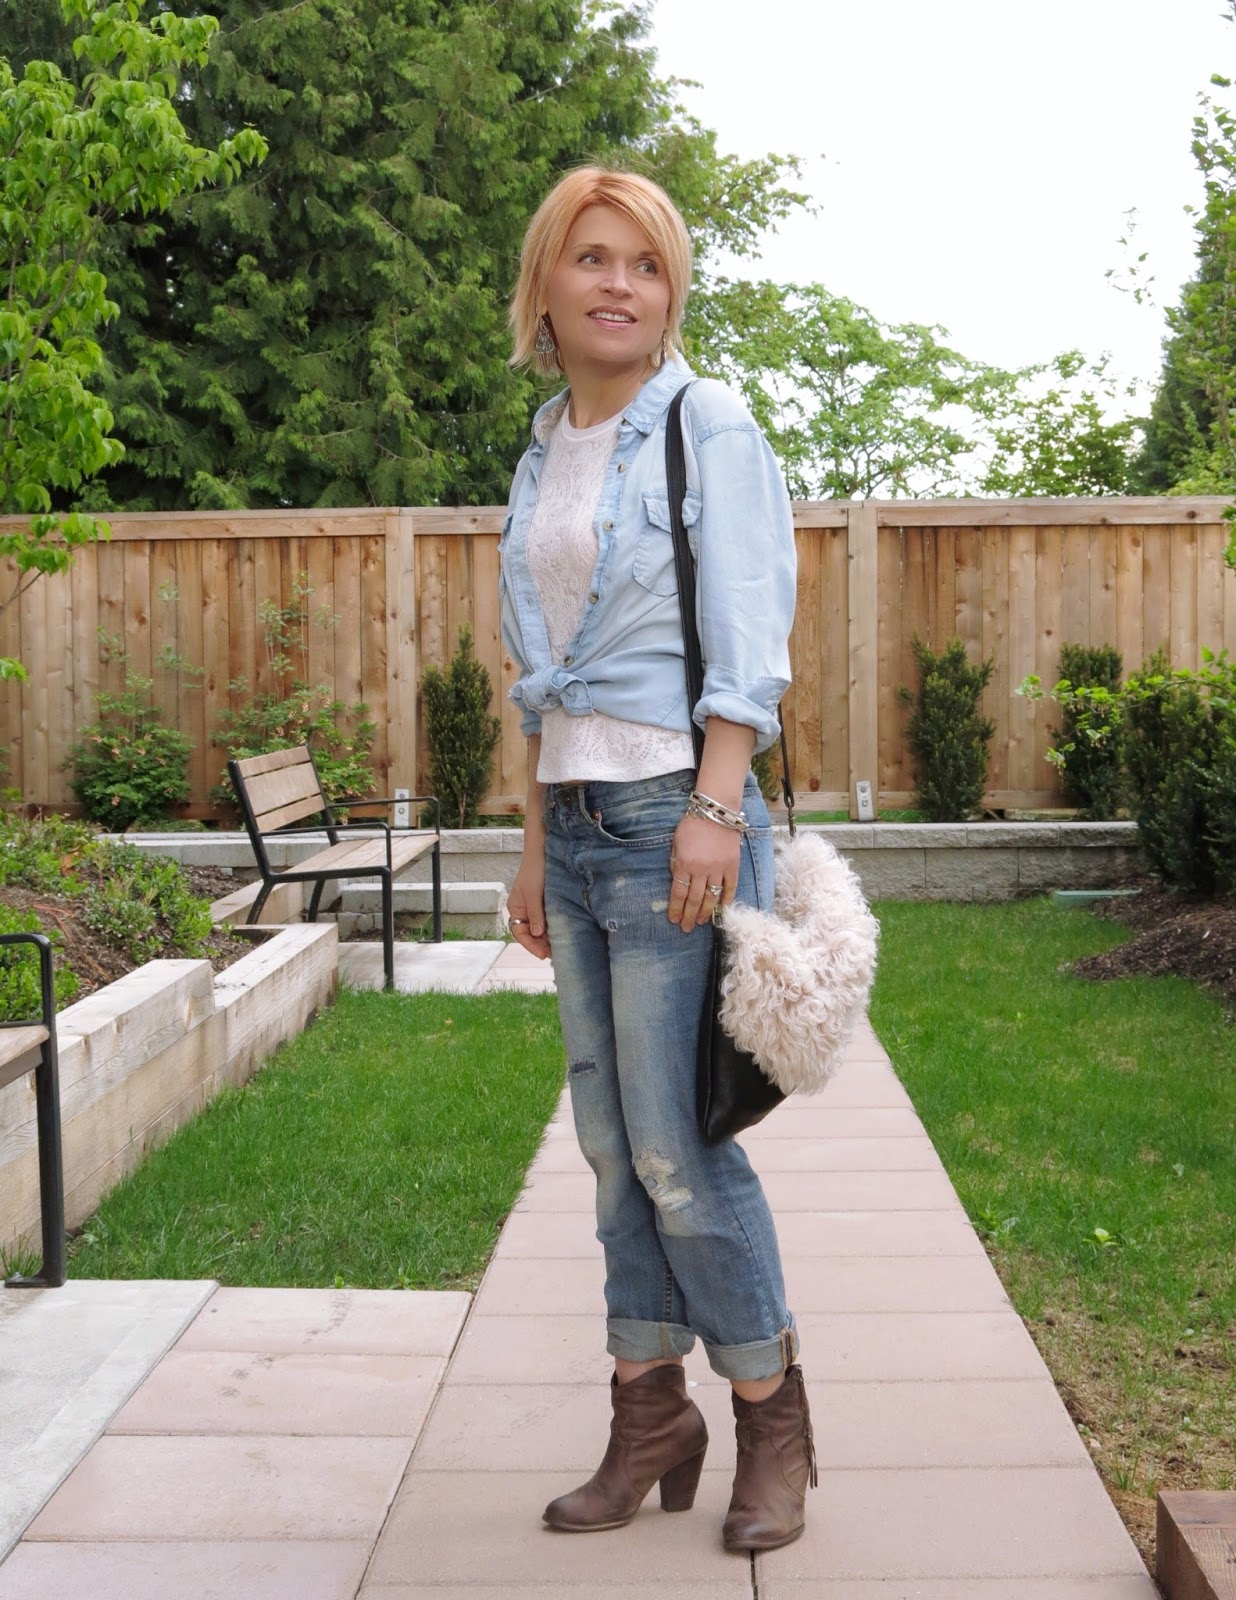 styling boyfriend jeans with a lacy top, chambray shirt, and western-inspired booties